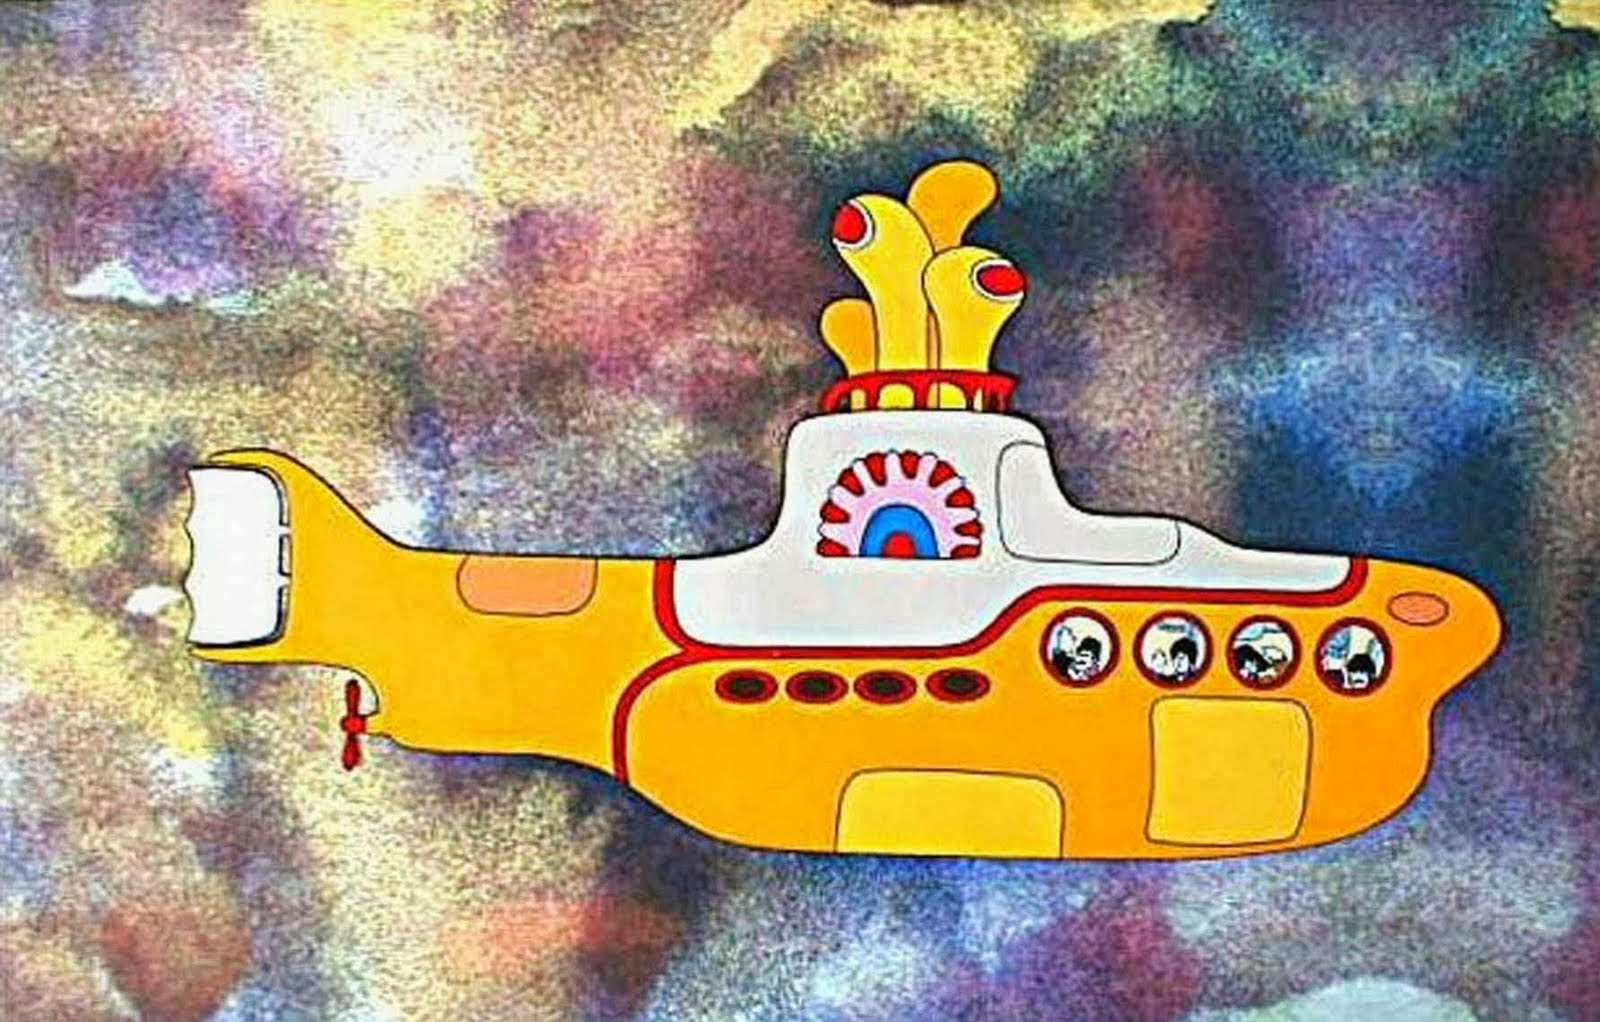 Acme beatles yellow submarine rollerball pen and card case limited edition set - card case - close-up